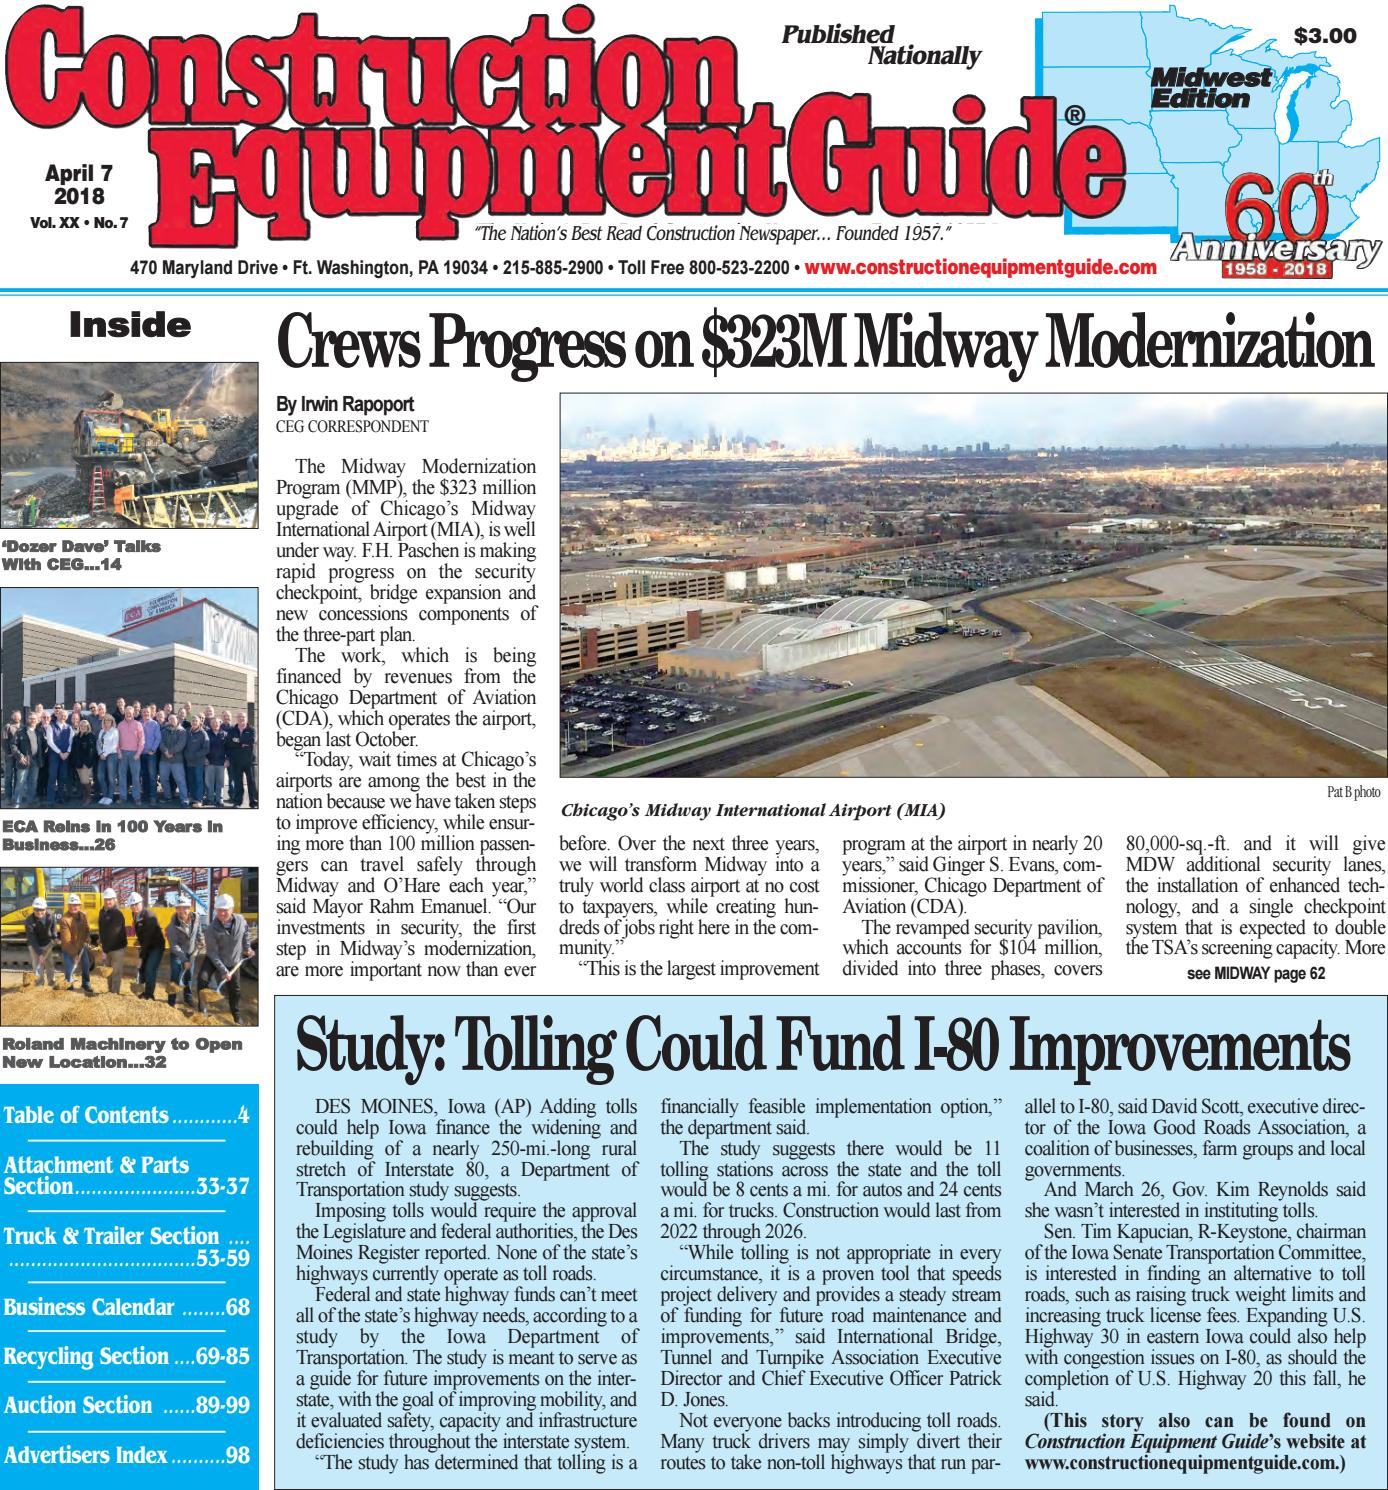 Midwest 7 April 7, 2018 by Construction Equipment Guide - issuu